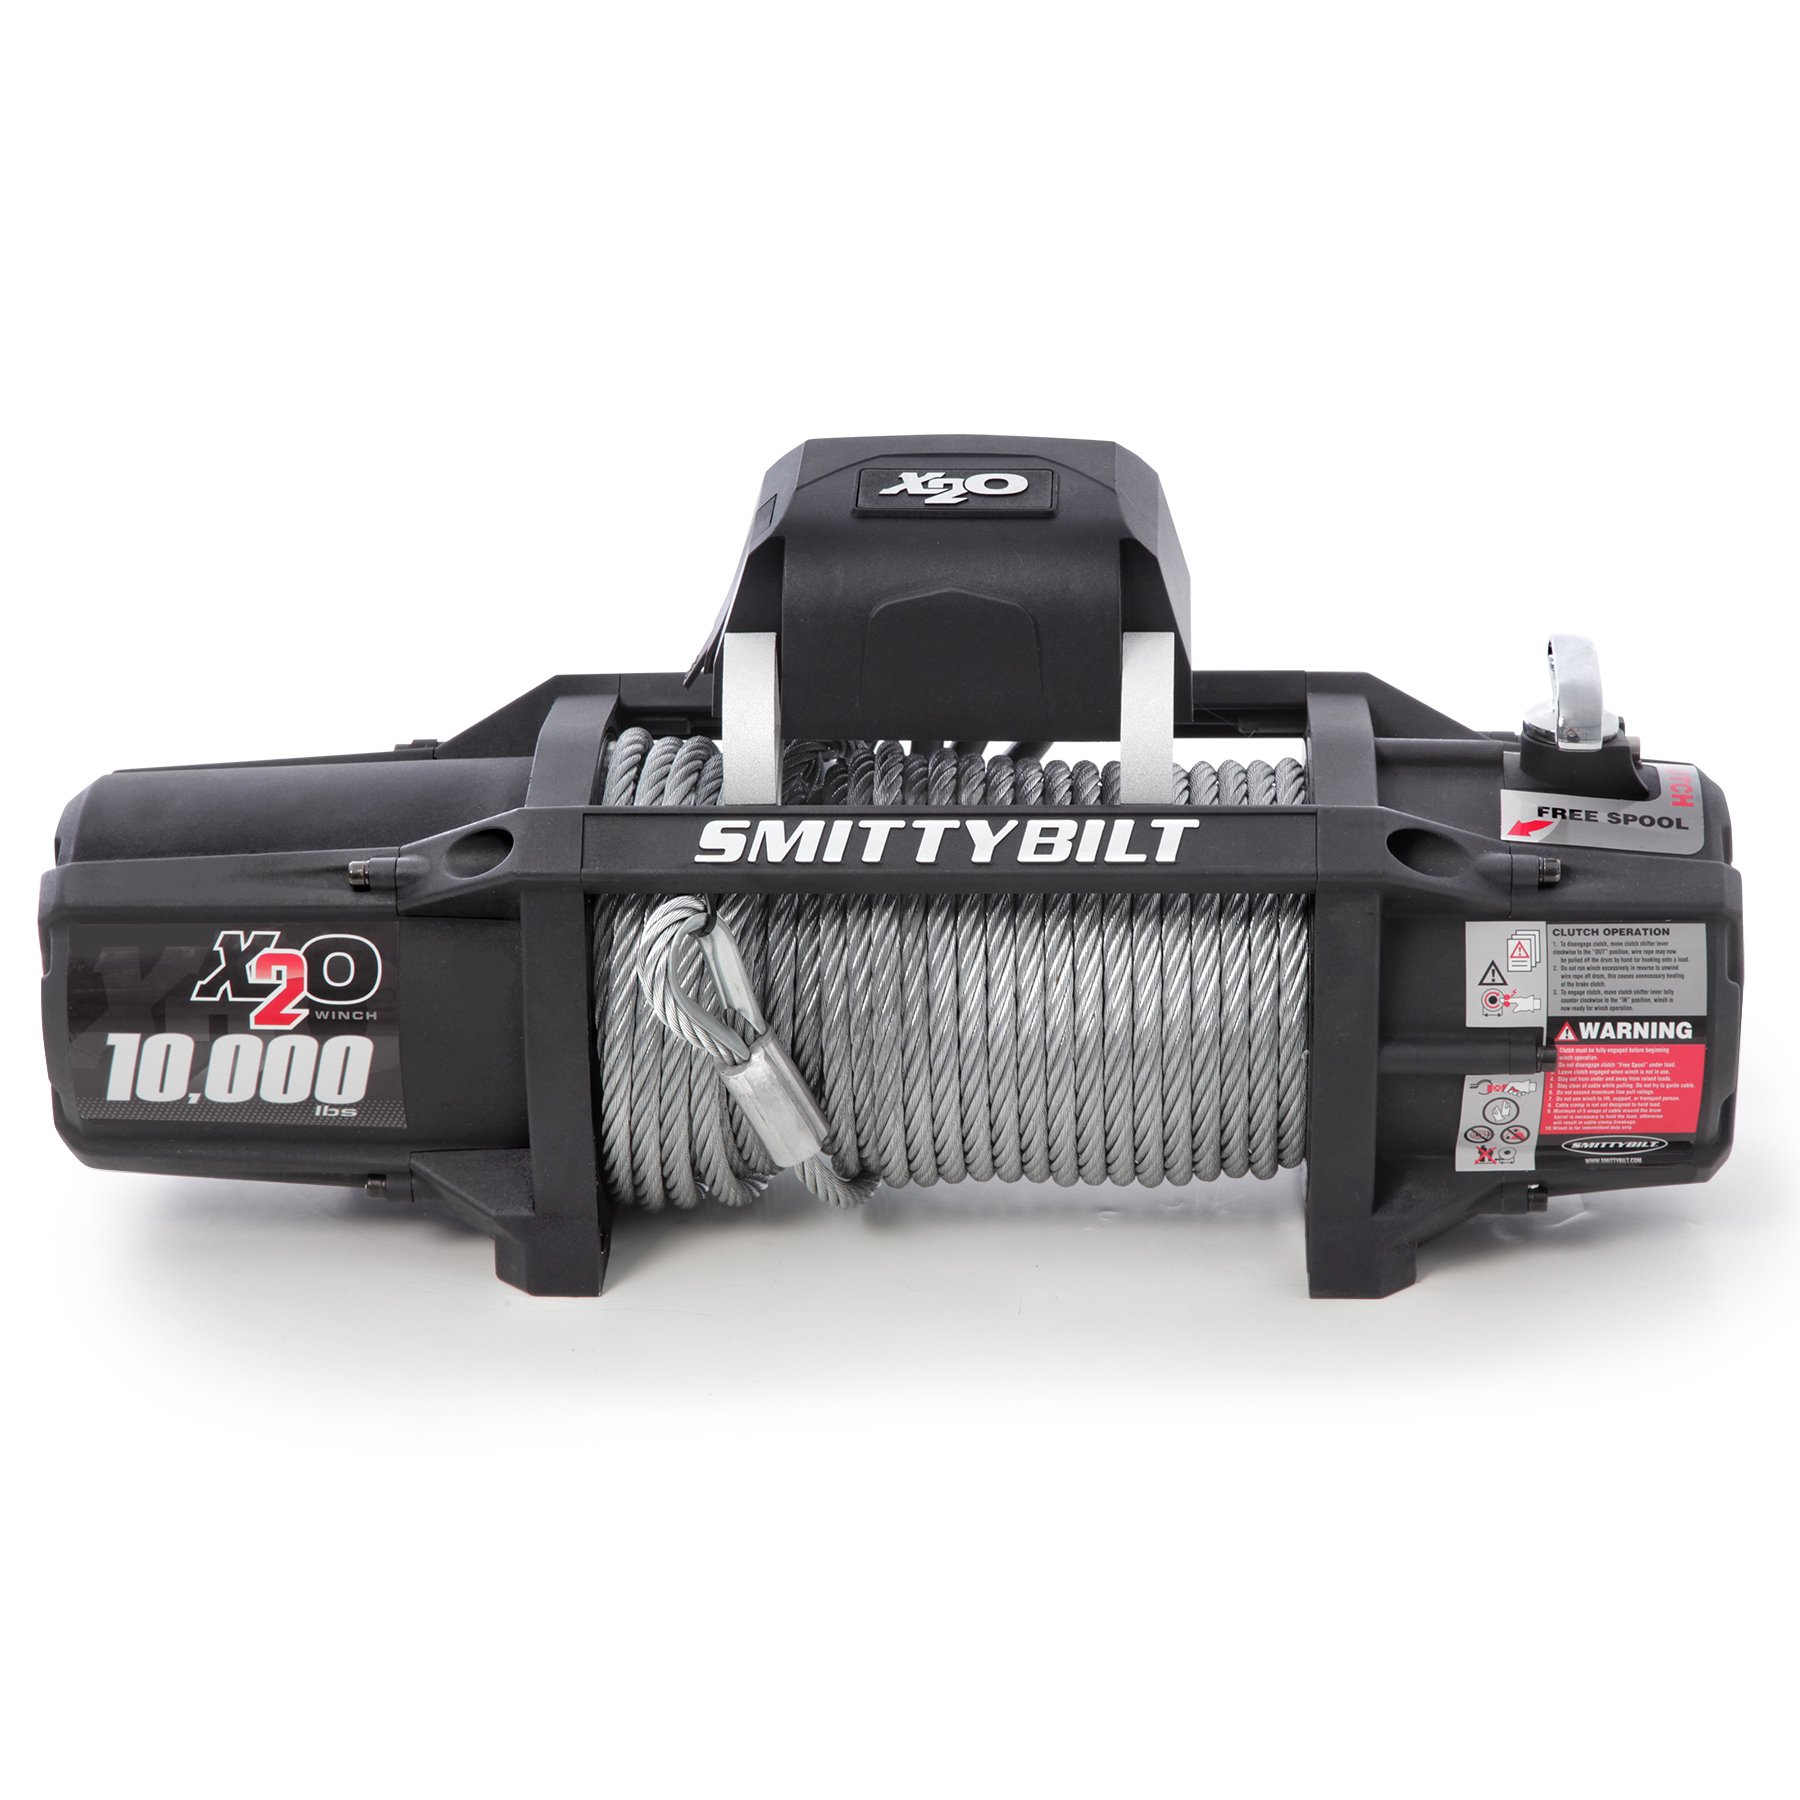 Smittybilt (97510) X2O Waterproof Winch - 10000 lb. Load Capacity by Smittybilt